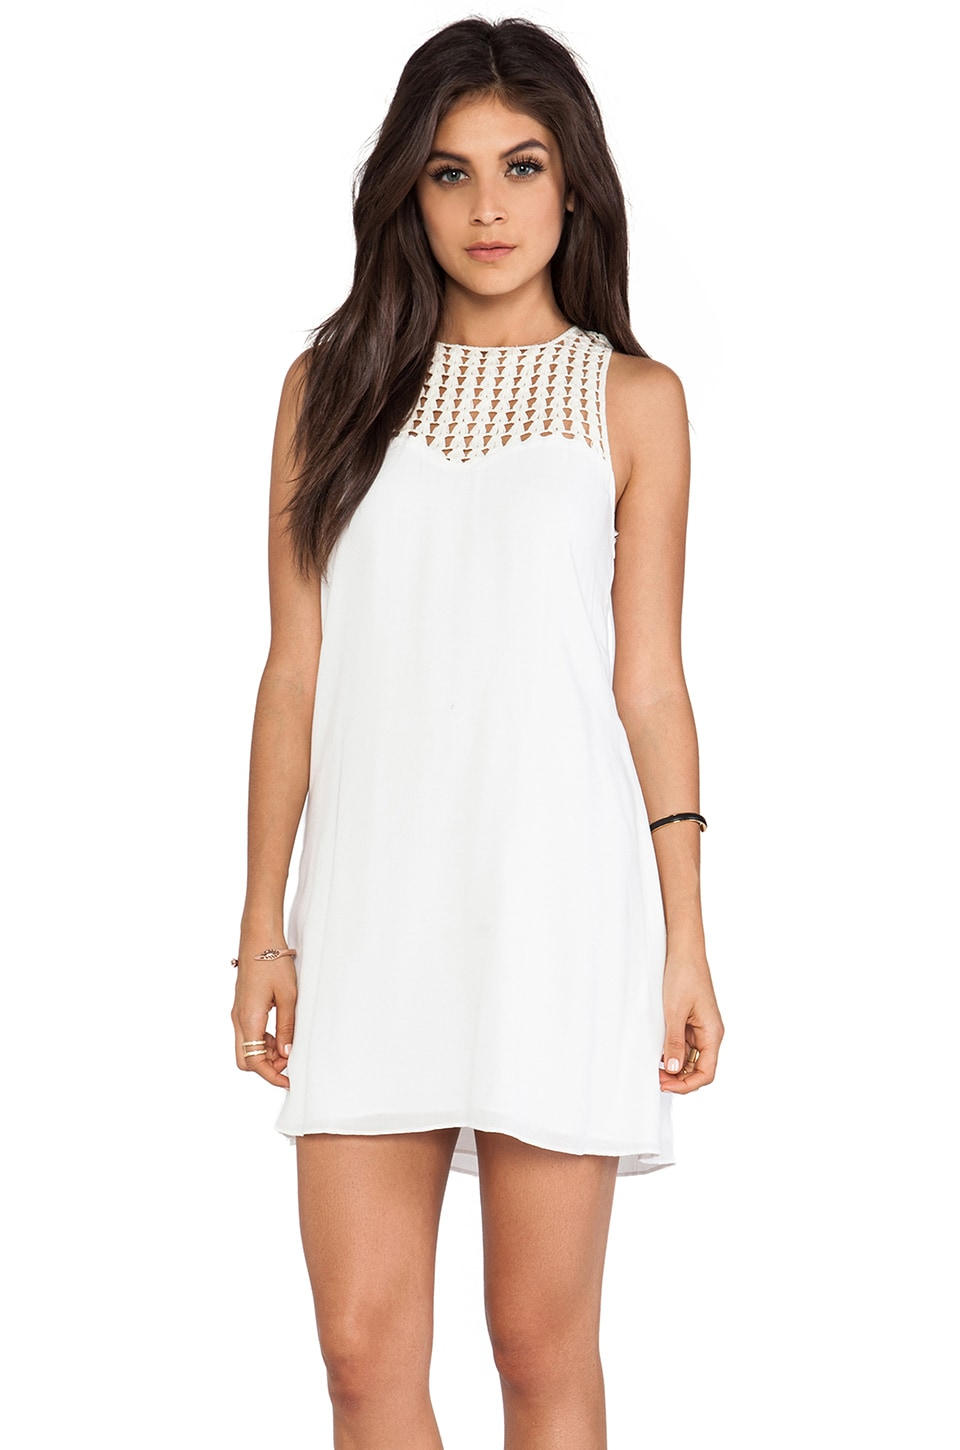 Lovers + Friends Plumeria Dress in White